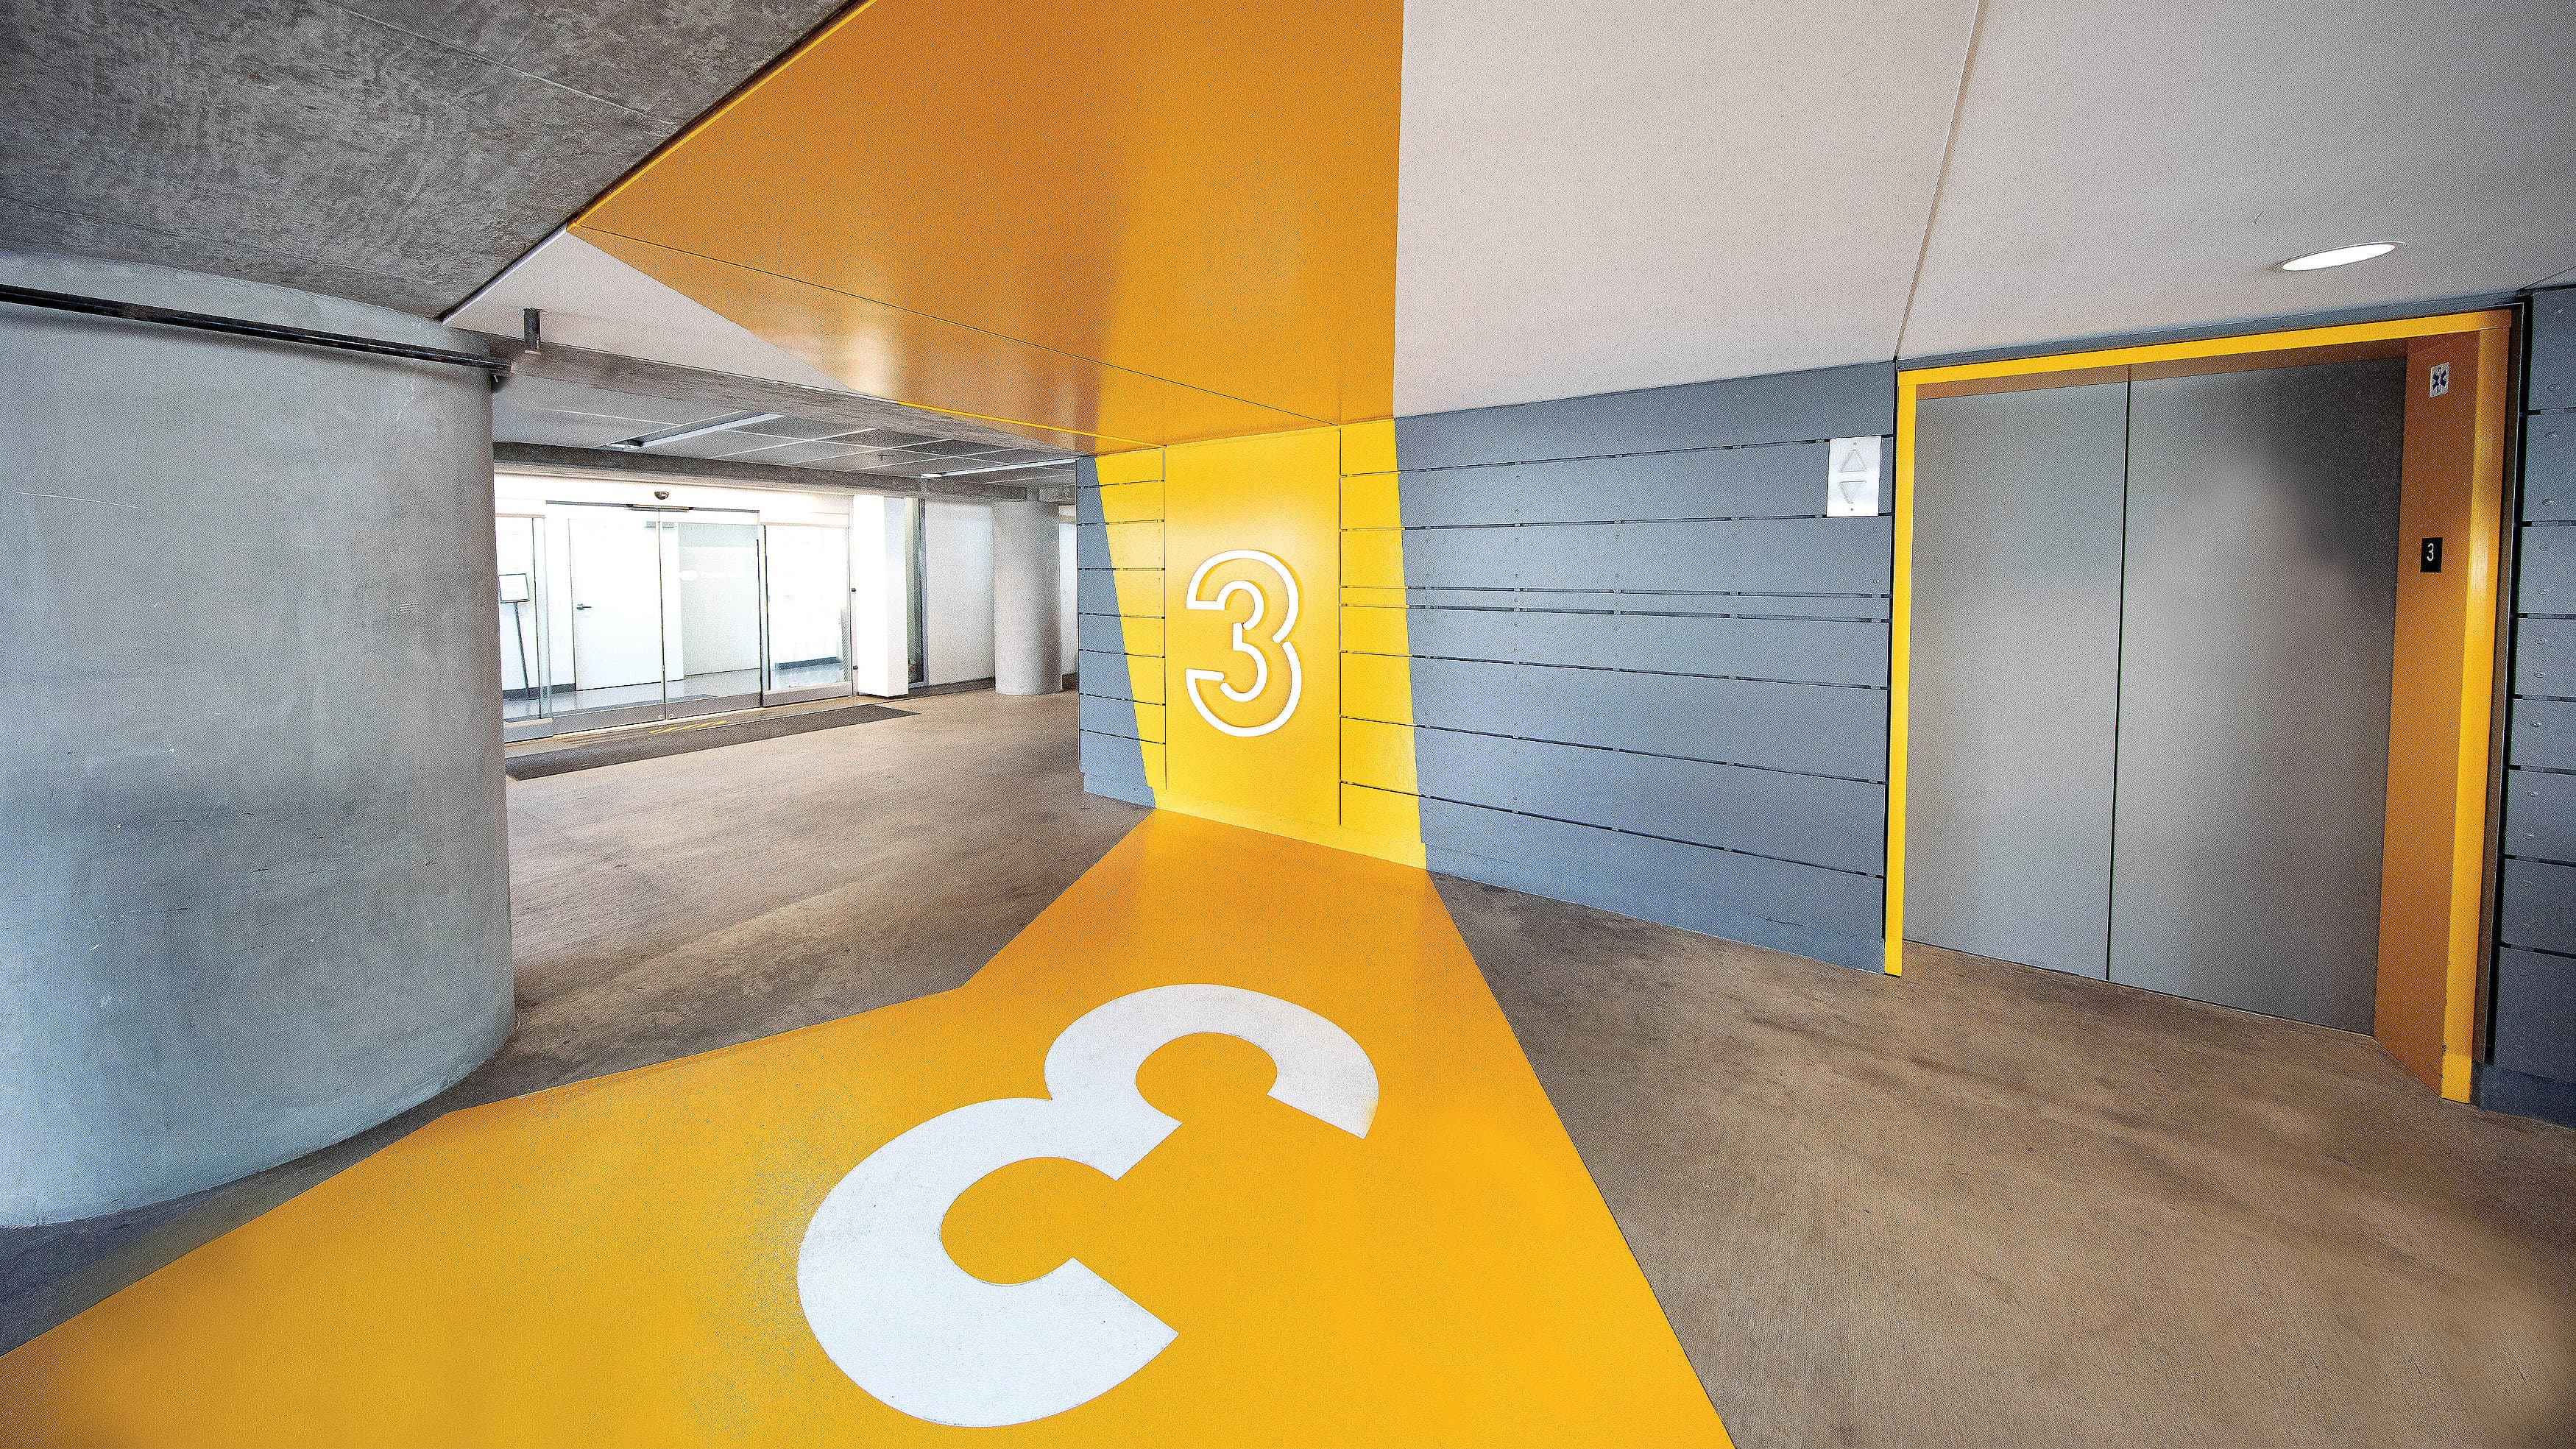 Yellow Painted Parking Garage with Level Numbers.